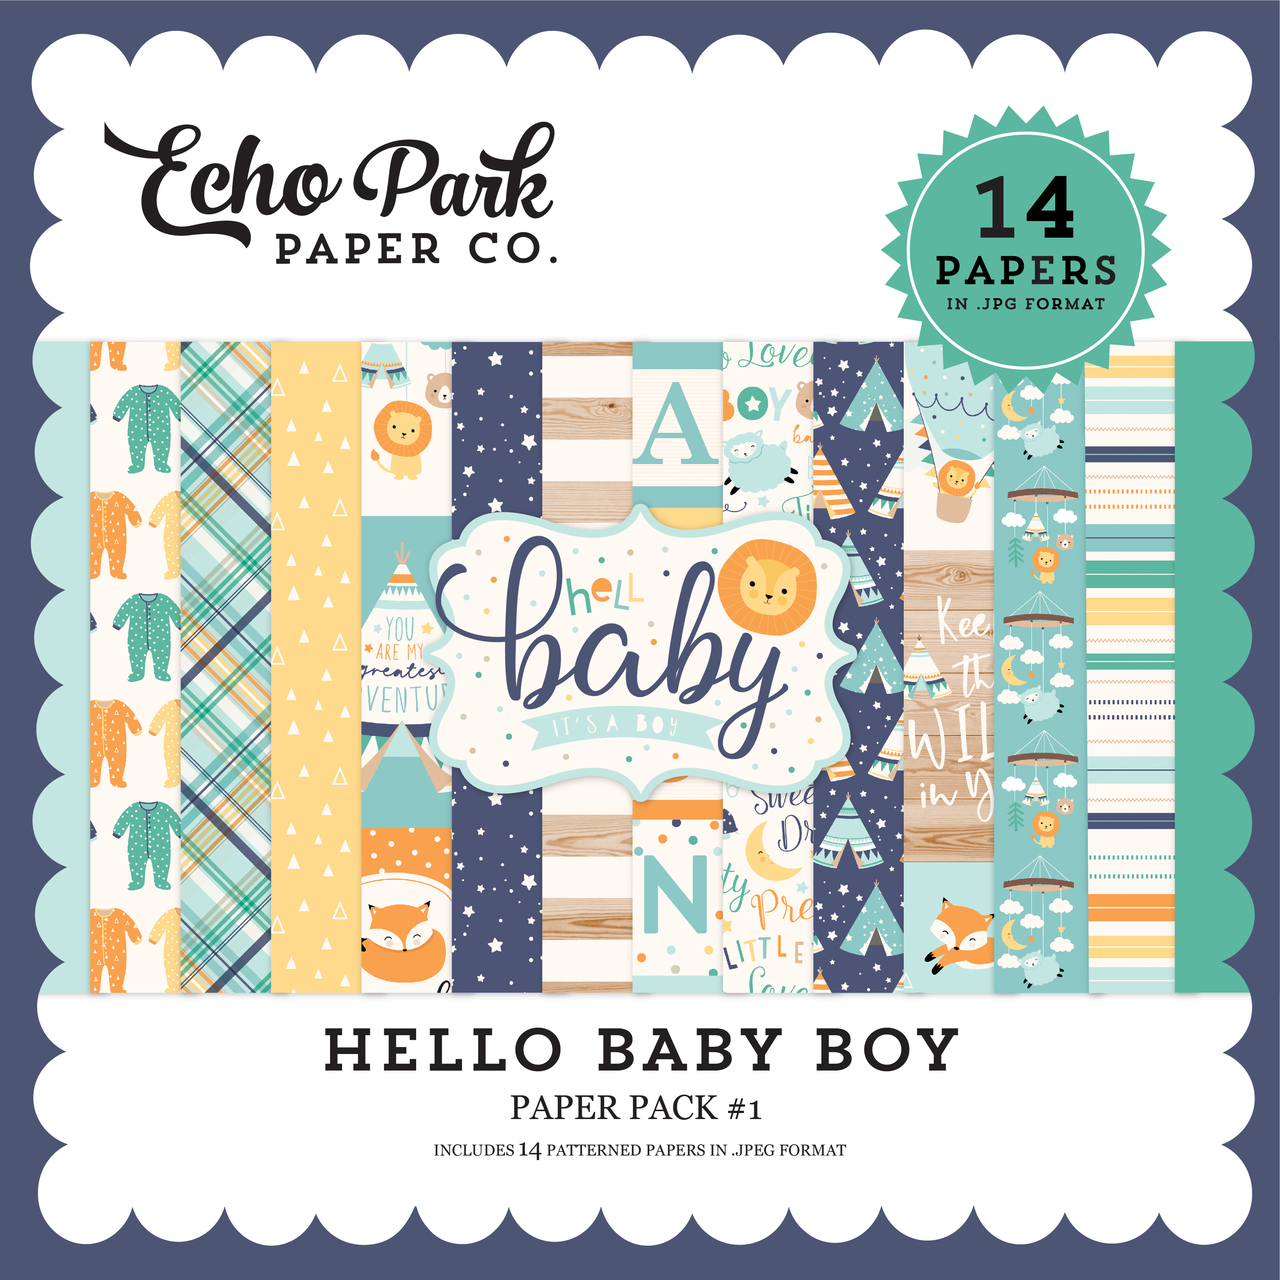 Hello Baby Boy Paper Pack #1